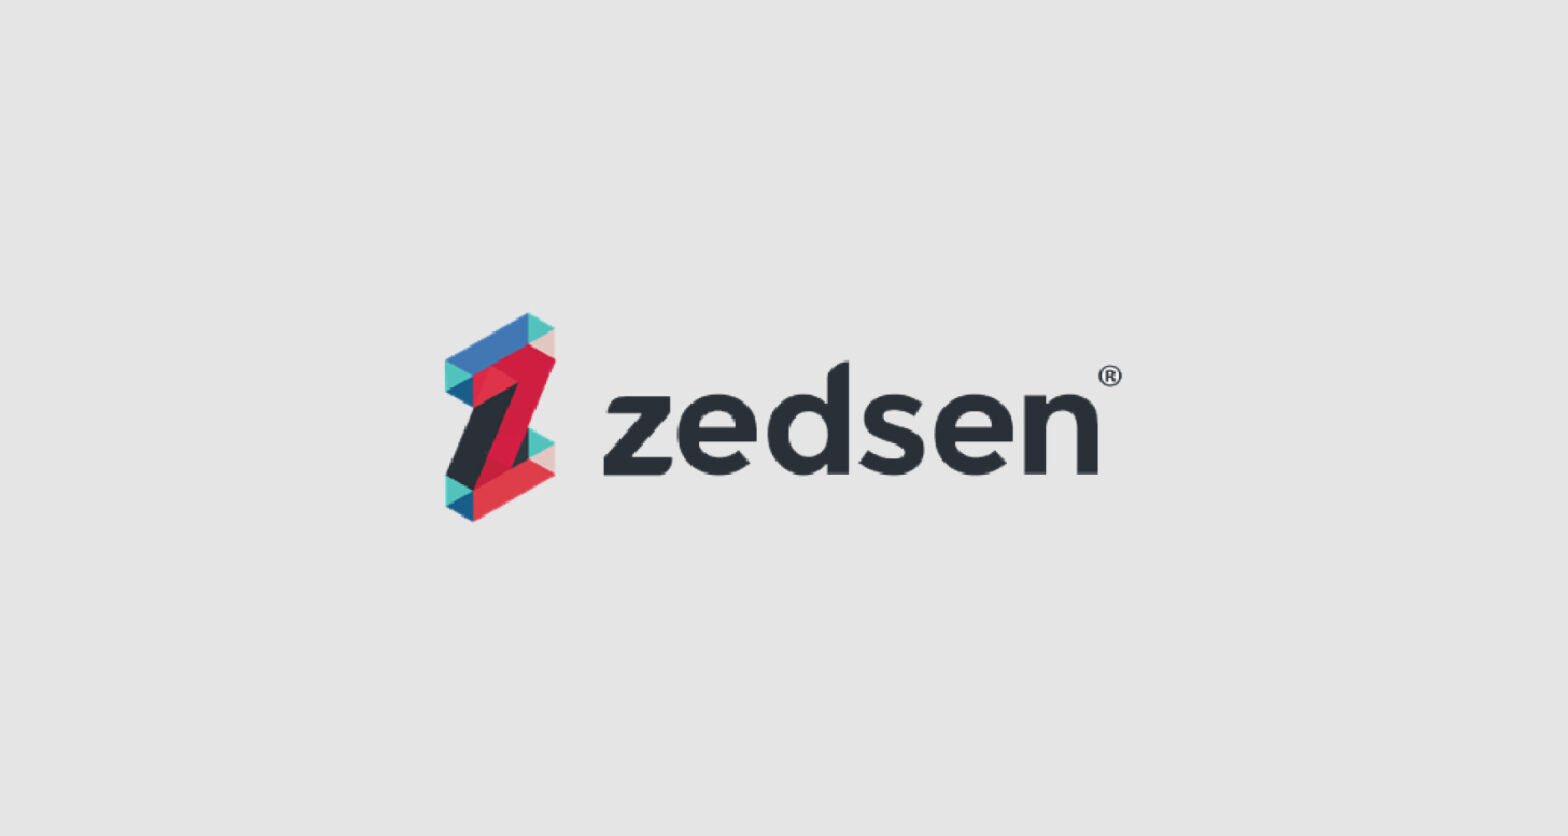 CWEIC Strategic Partner Zedsen pioneers breakthrough technology to prevent illness and put your doctor in your pocket